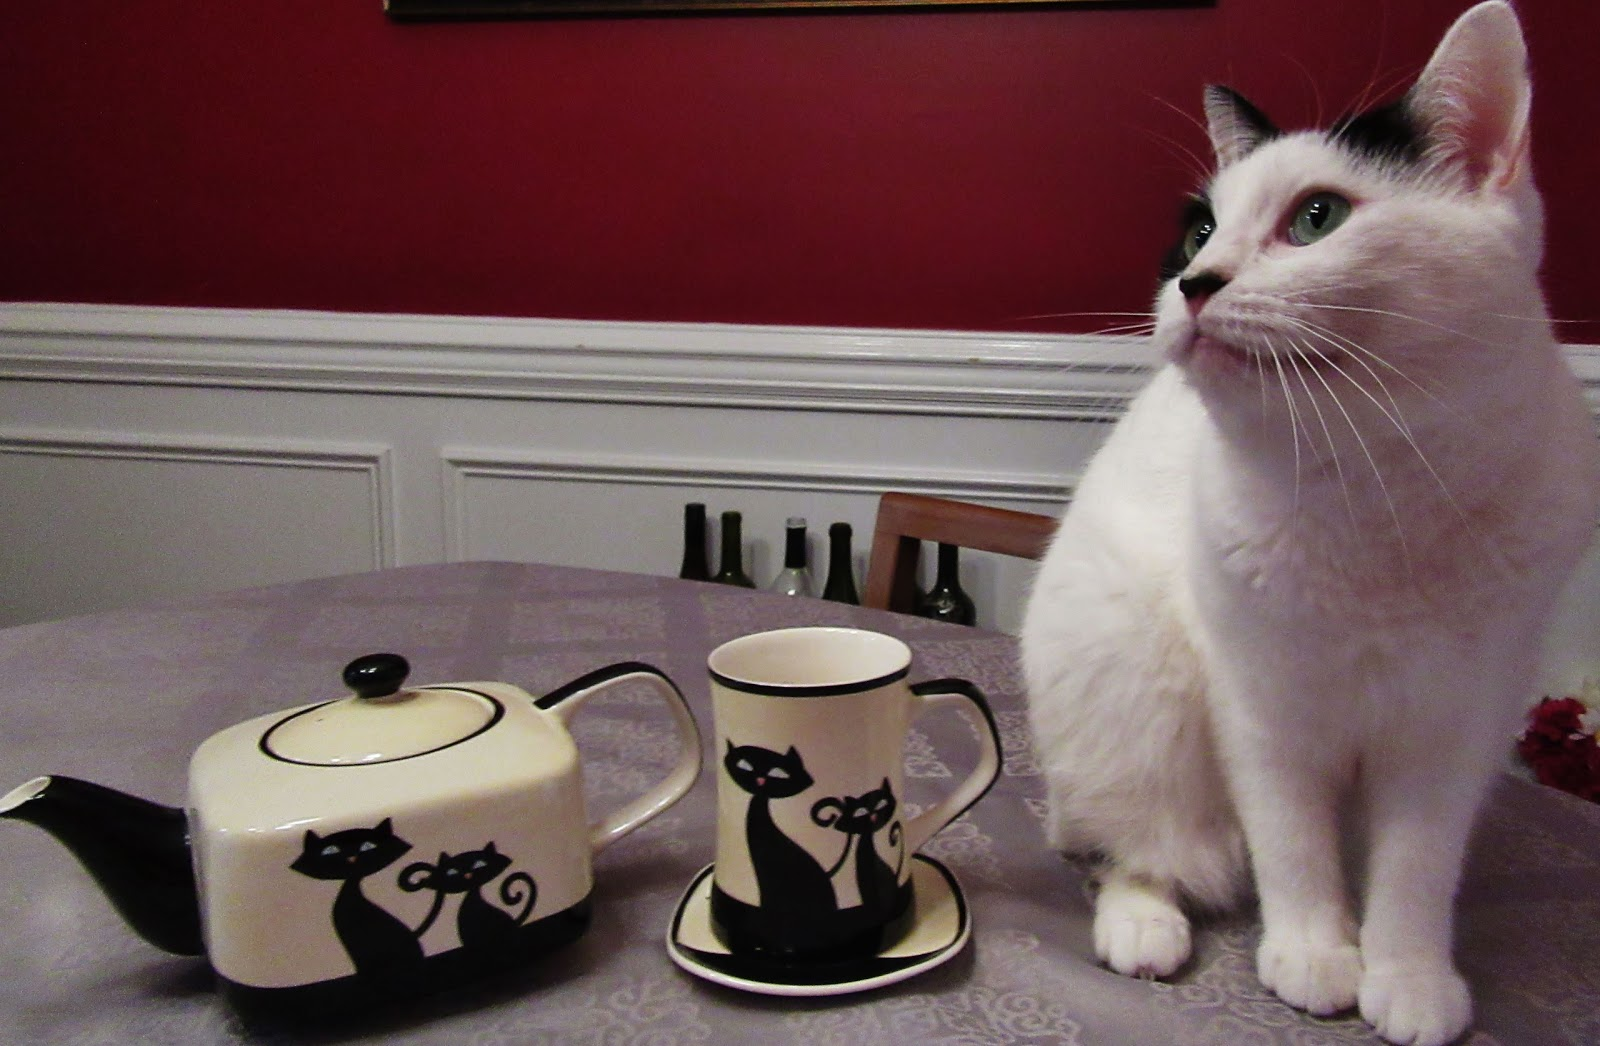 Cat Coffee Mug.JPG